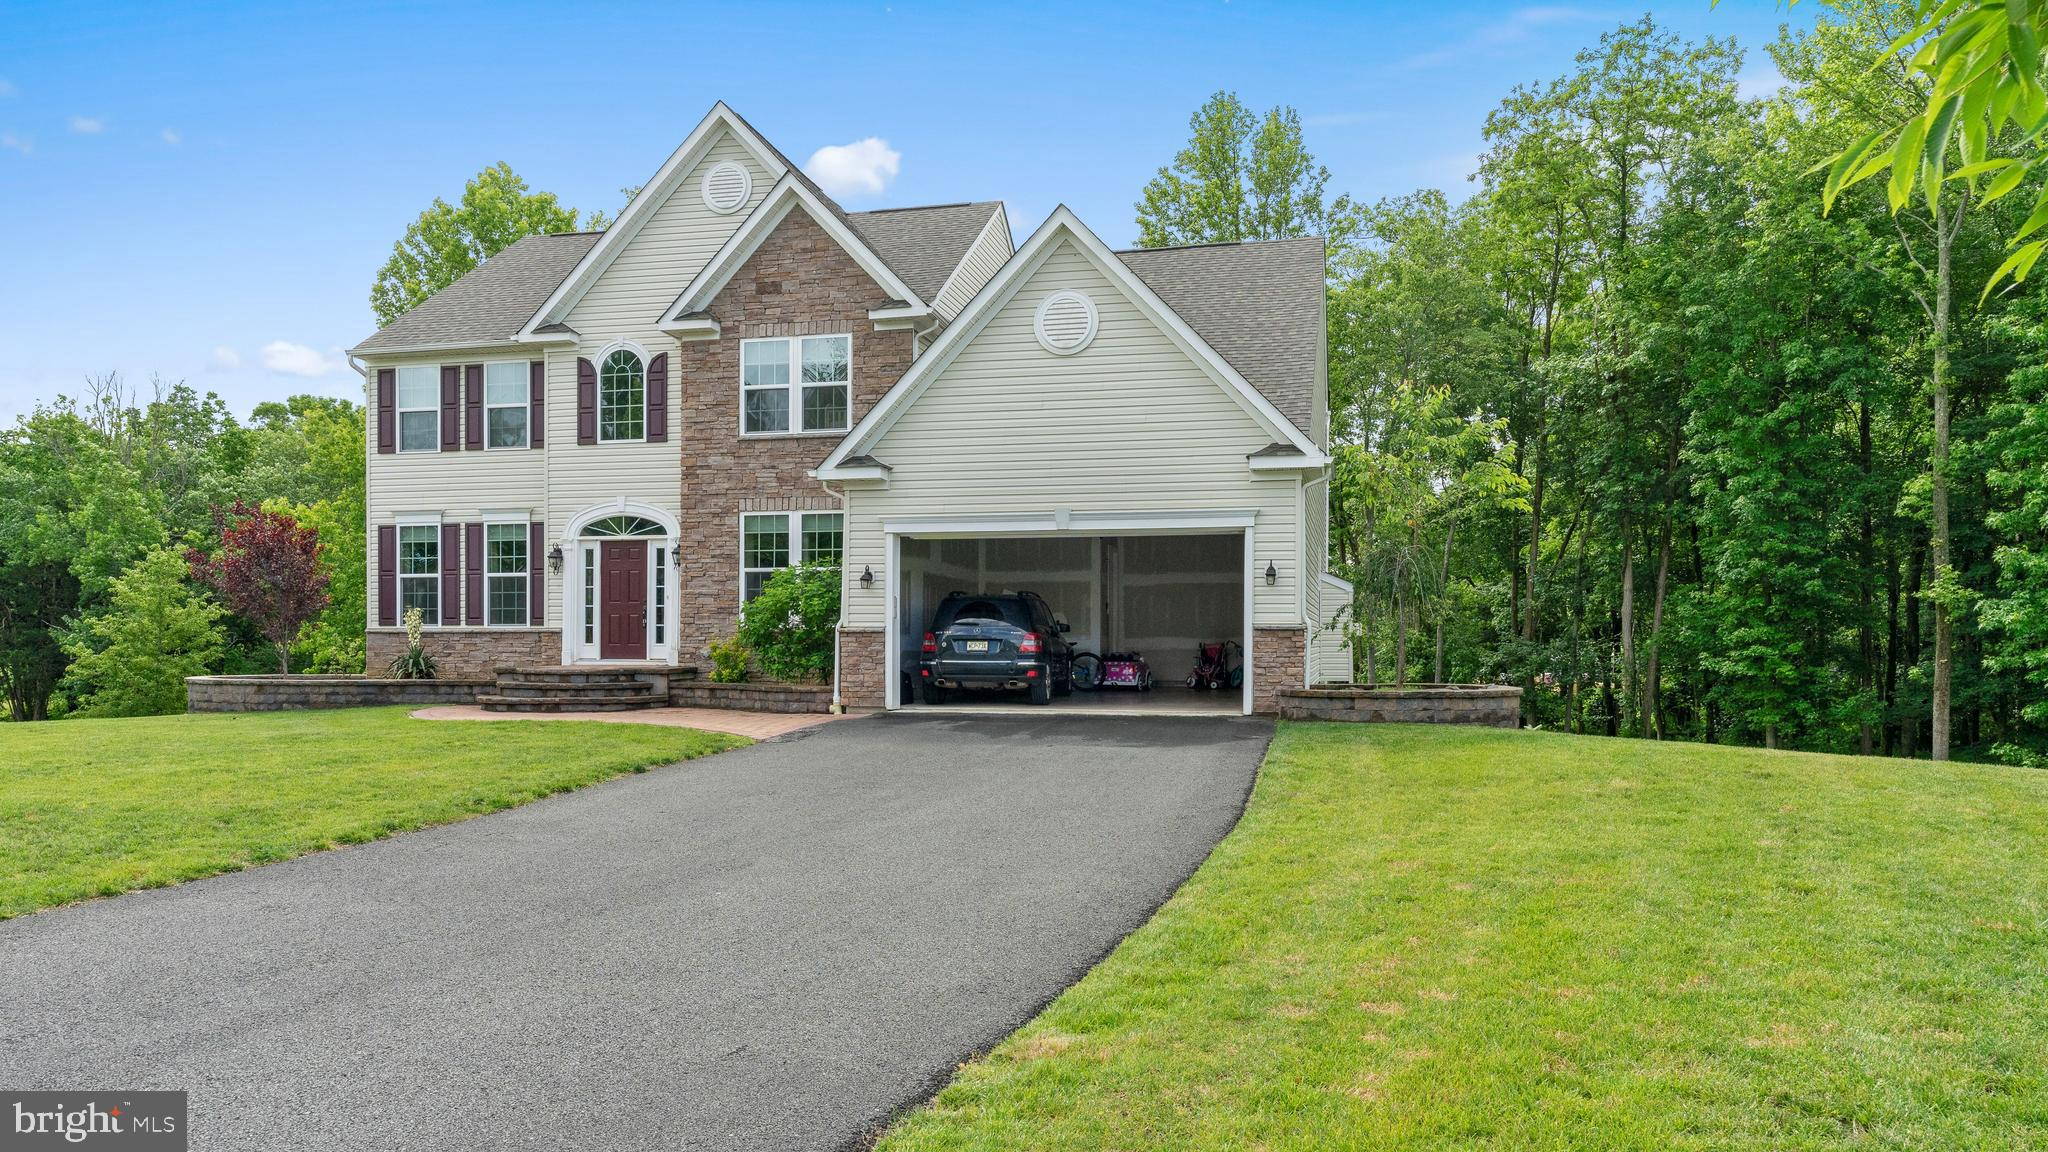 7 STASI COURT, OLD BRIDGE, NJ 08857